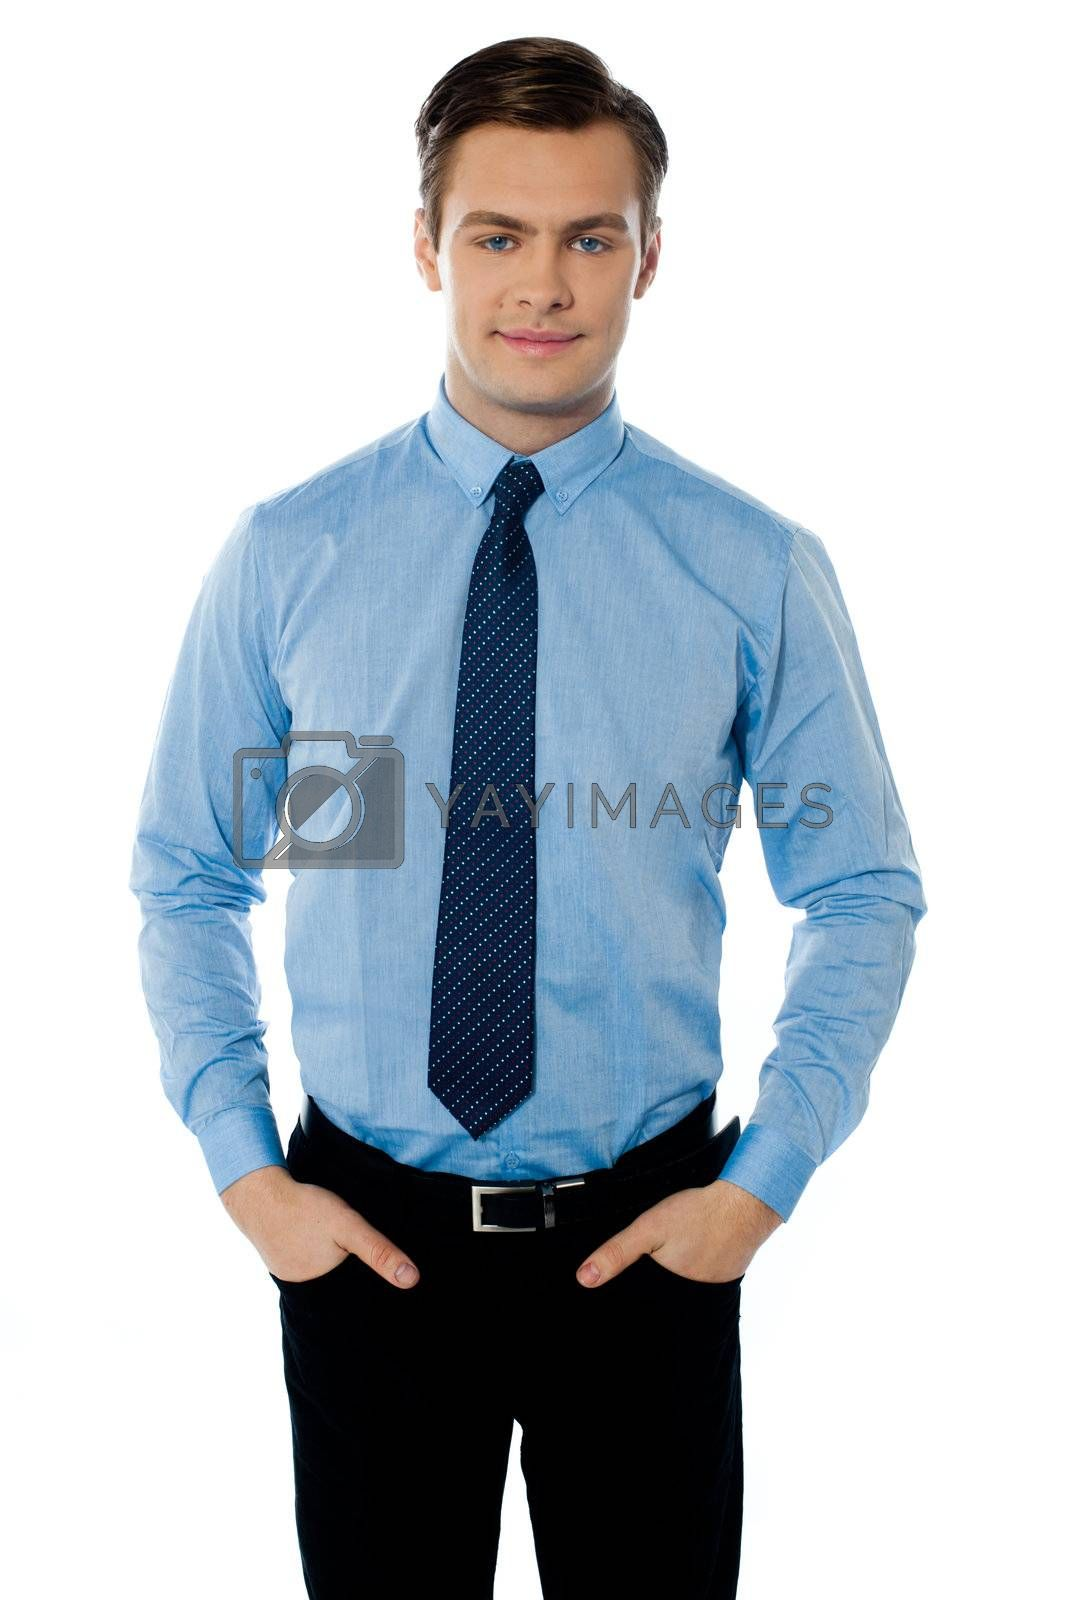 Businessman posing with hands in his pockets on white background